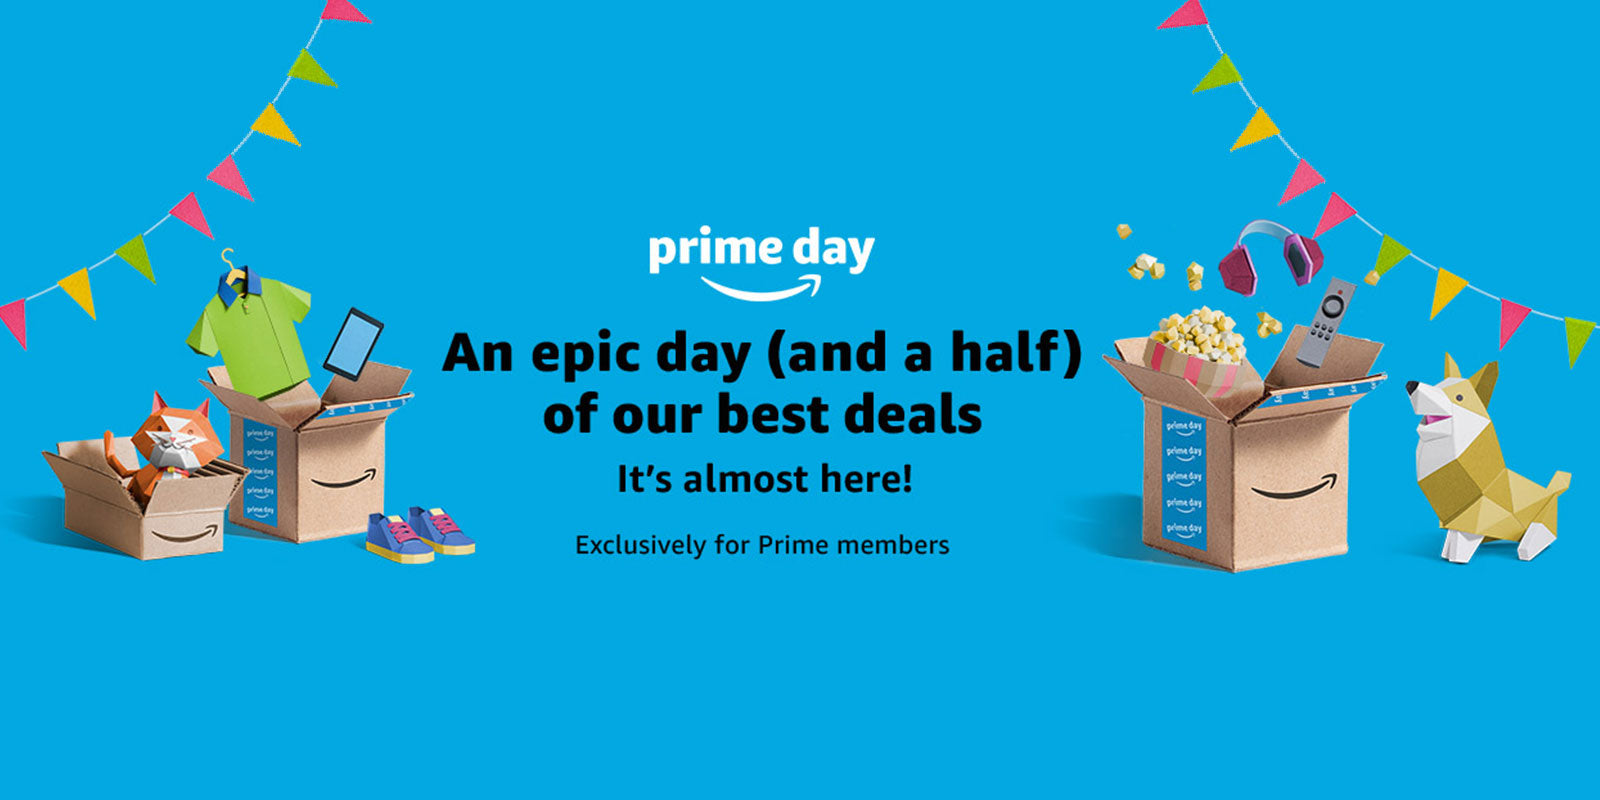 Amazon Prime Day 2018: What time does it start tomorrow and how and where to find the best deals